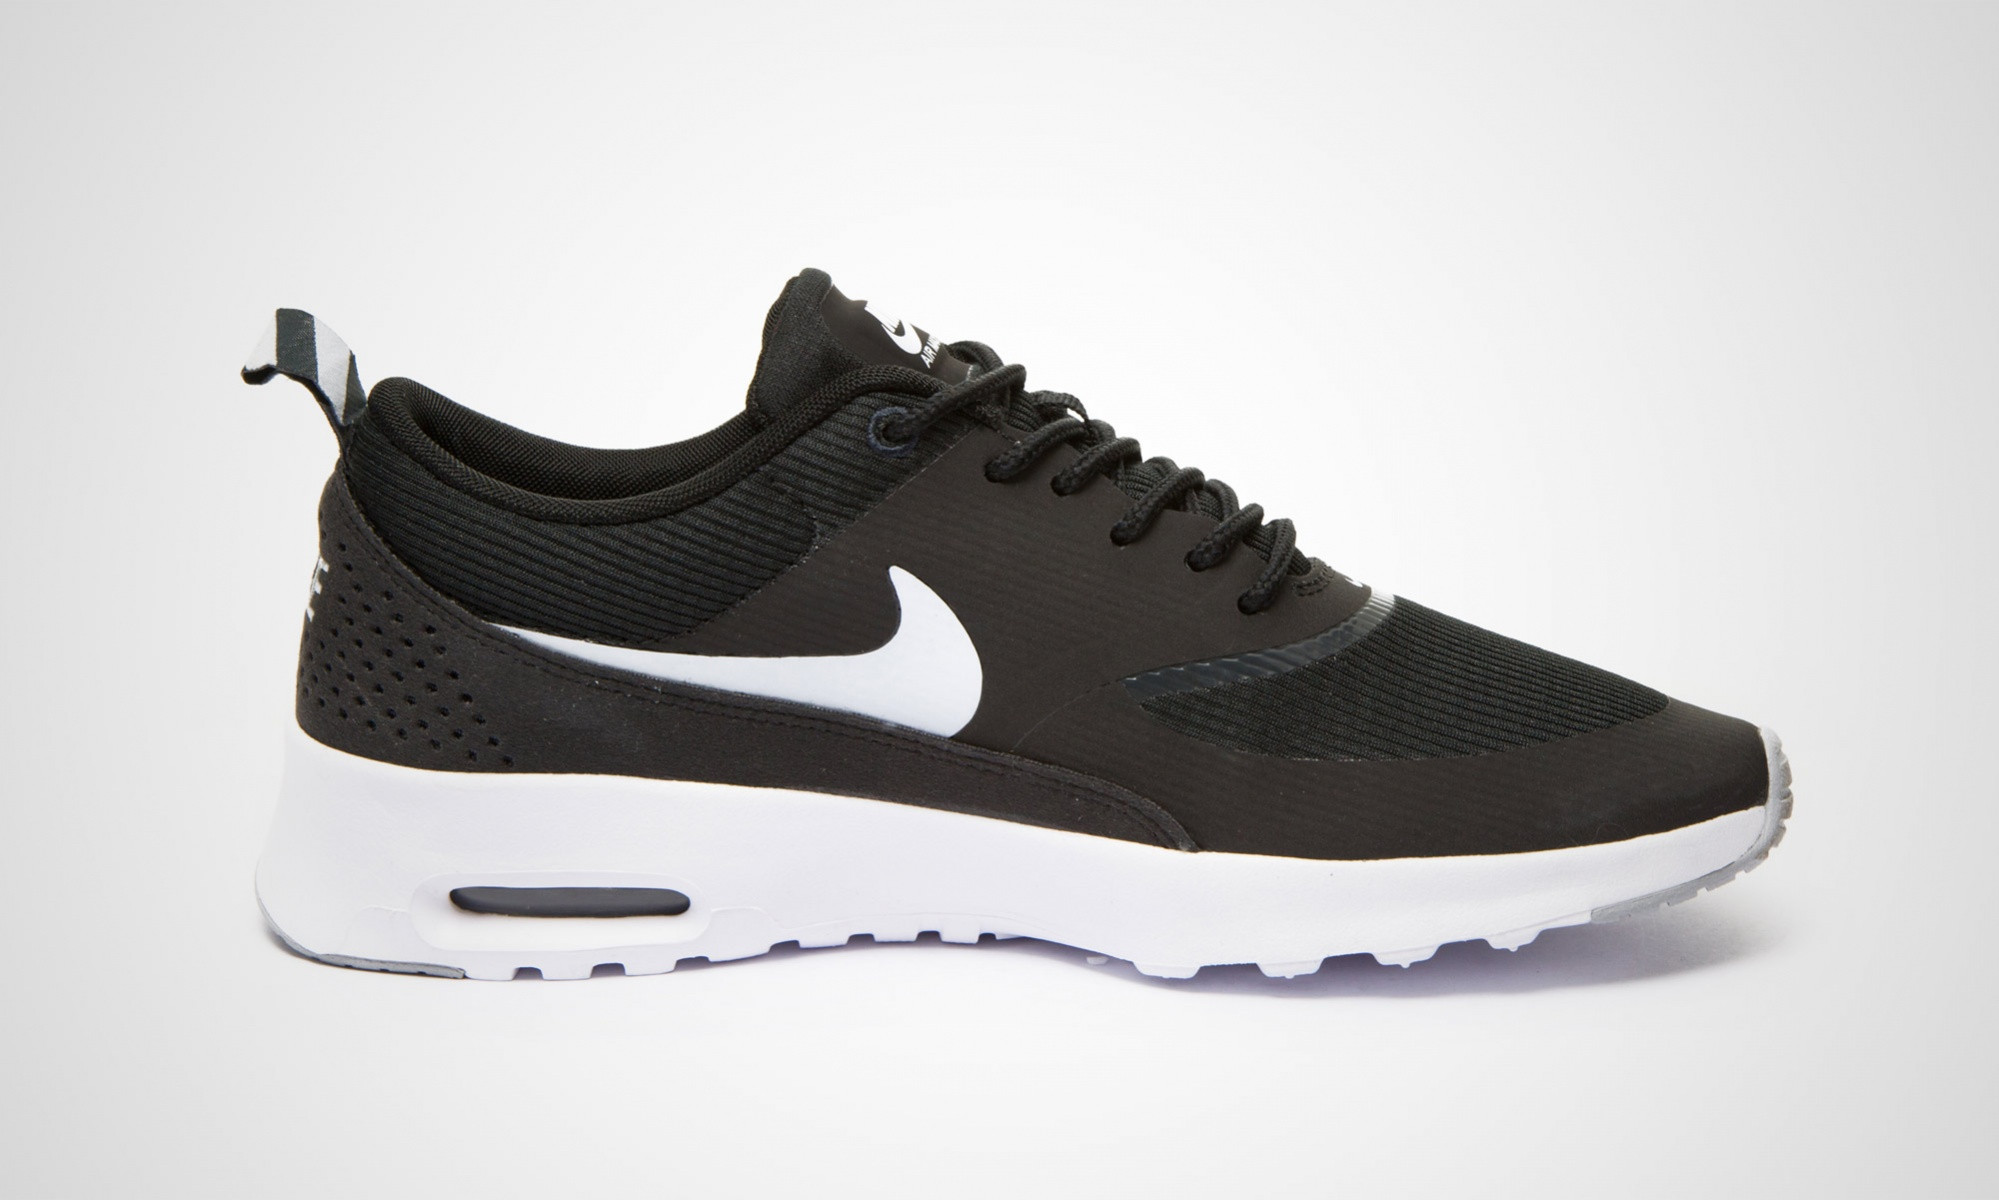 Bambas Nike Negras Mujer Magnífico Nike Air Max thea Mujer Hombre Negras Gris Lobo Of 31  Magnífico Bambas Nike Negras Mujer